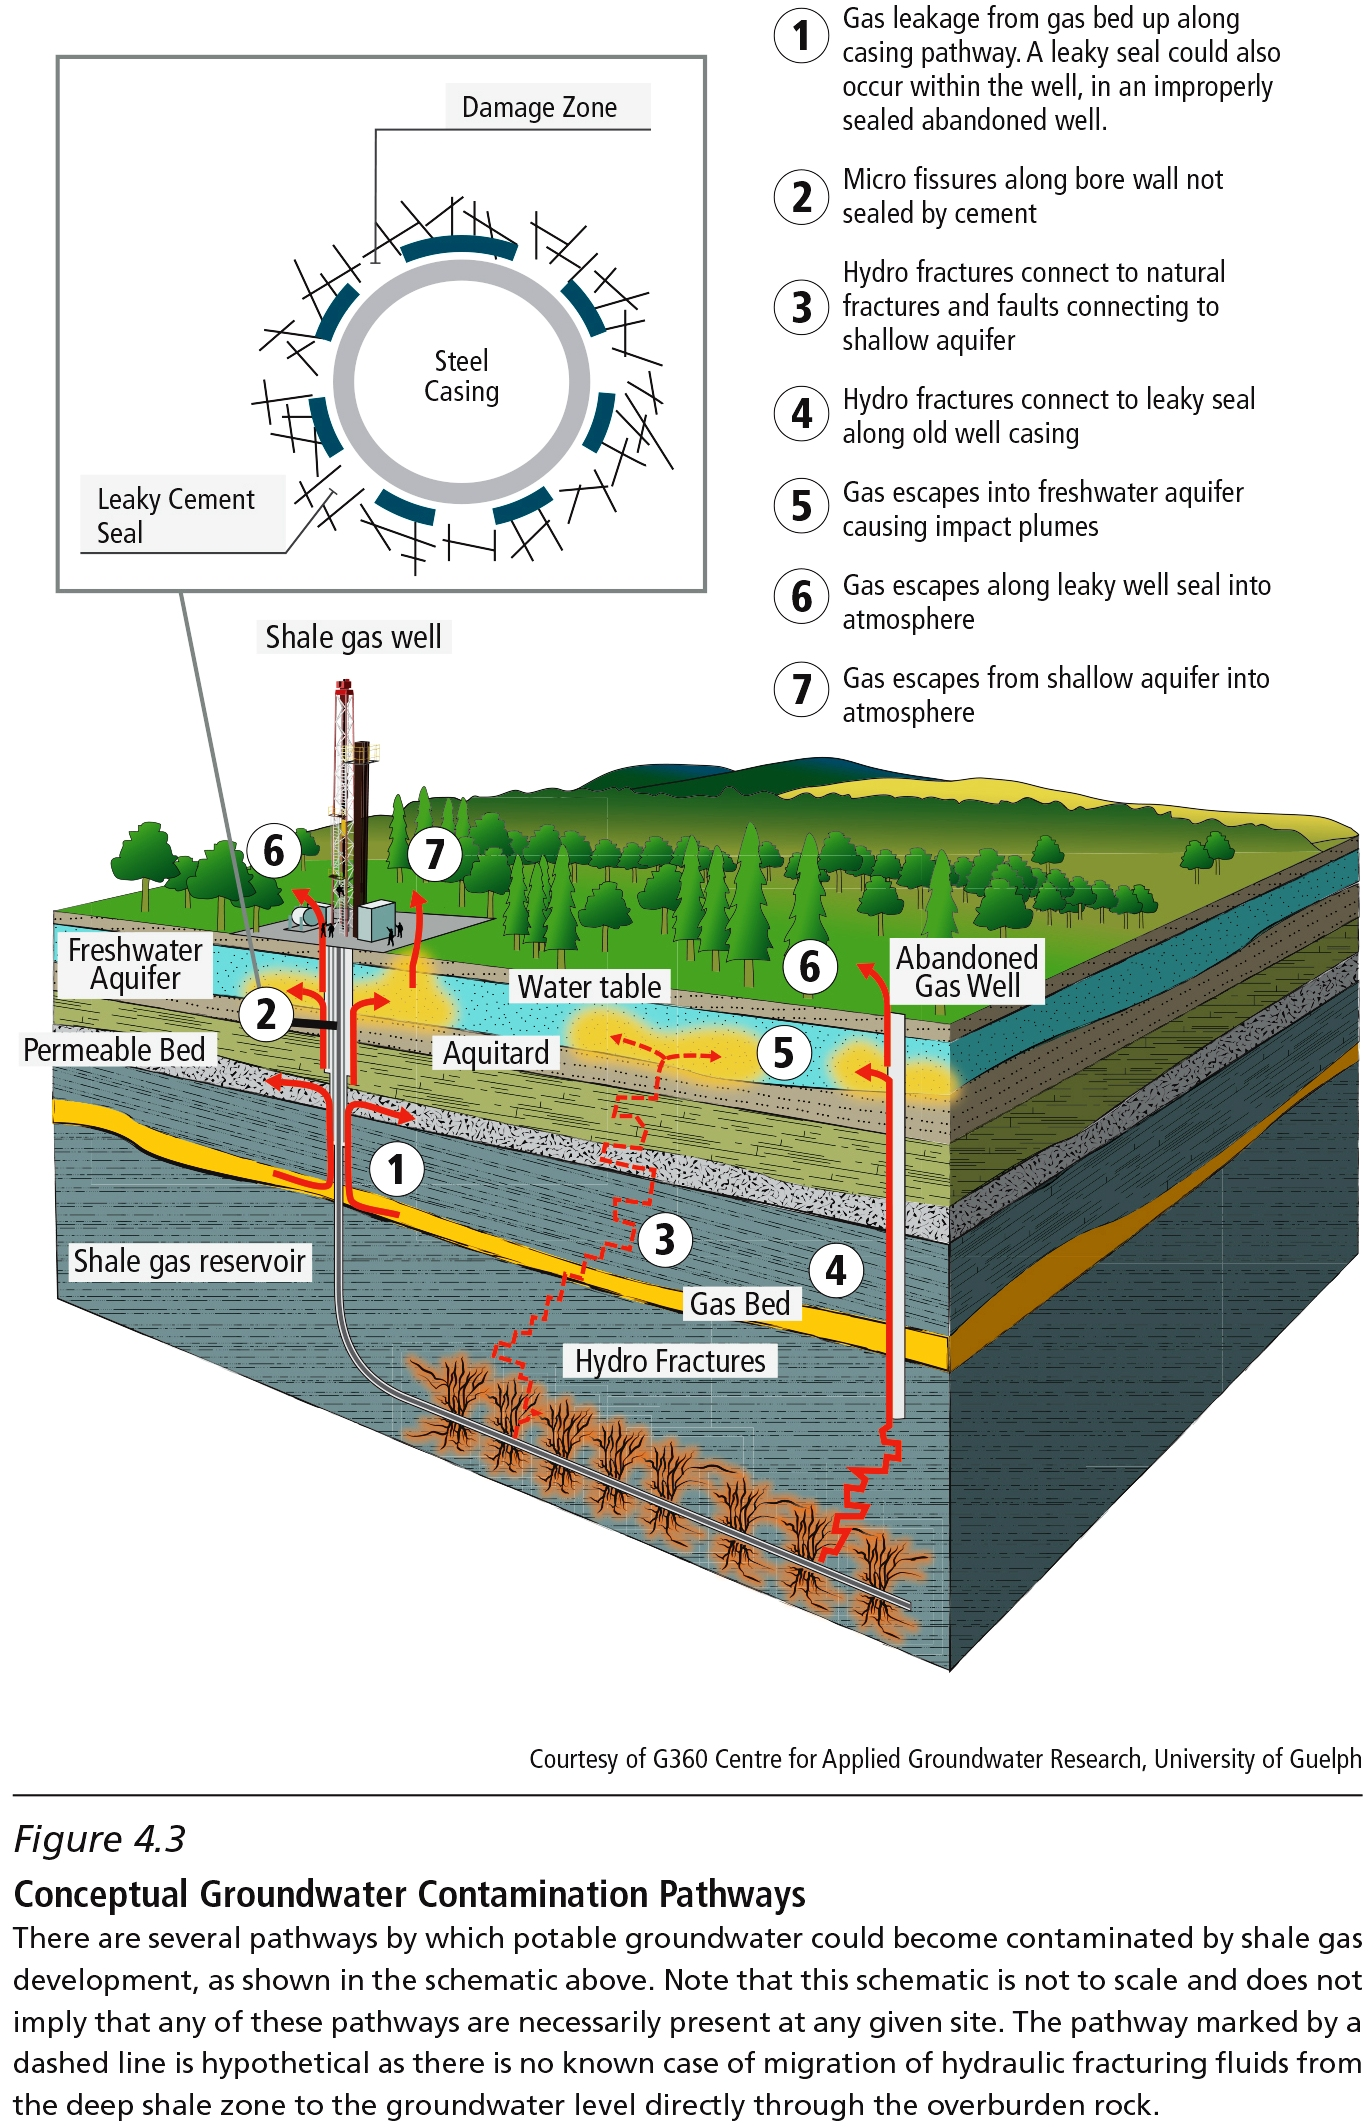 2014 04 30 CCA Conceptual Groundwater Contamination Pathway figure4_3_web_large